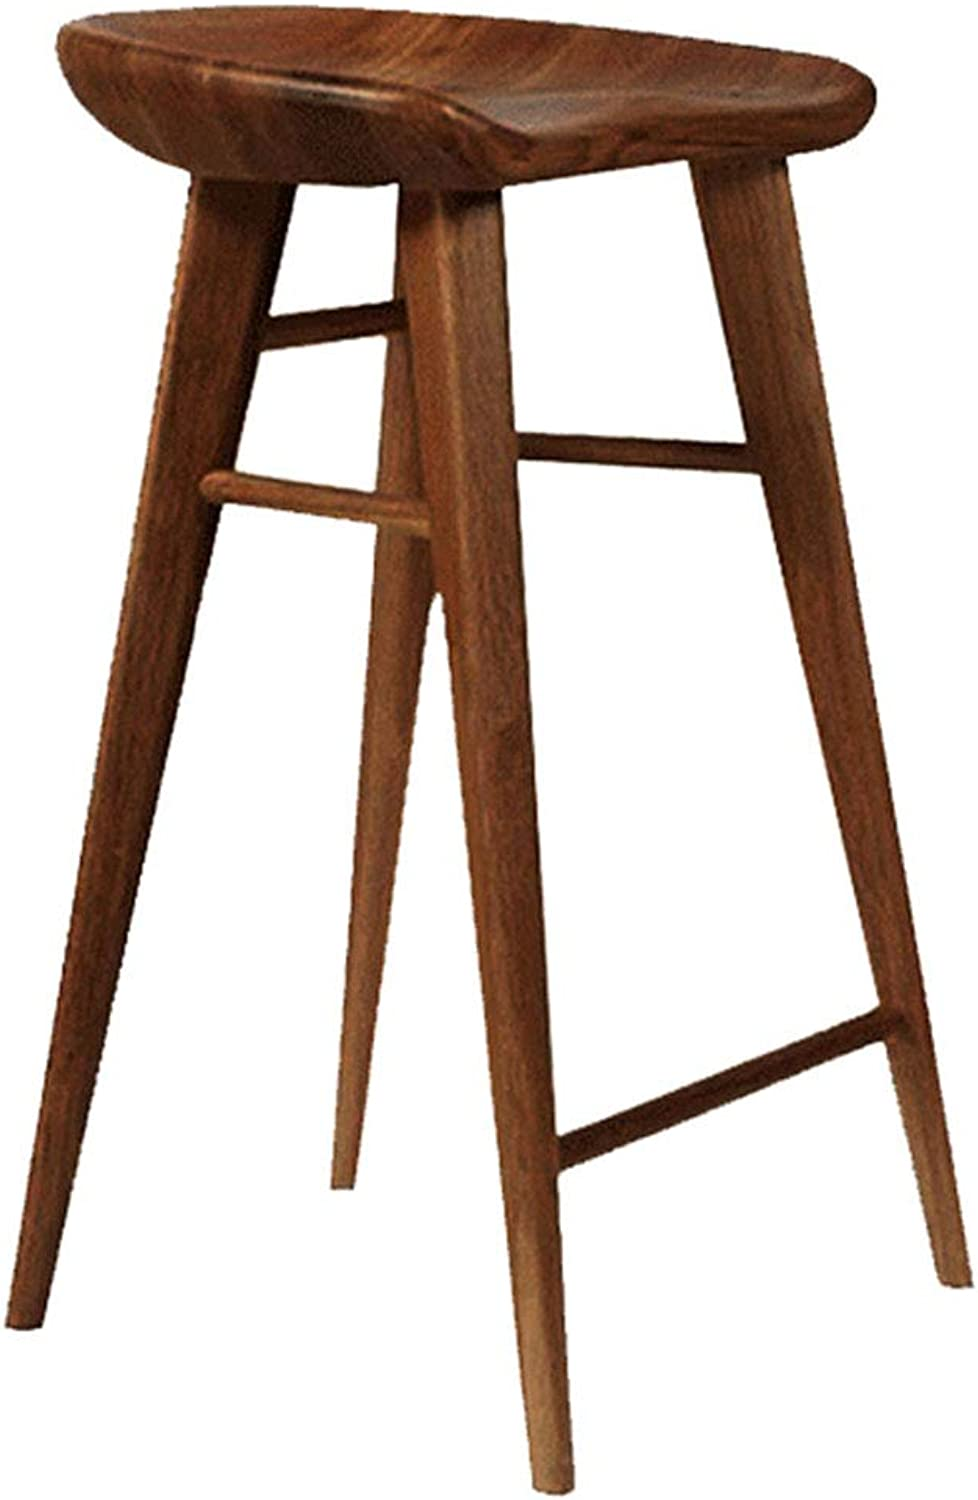 Bar Chair Modern Simple Bar Stool Wooden Household High Stool Dining Chair (color   A, Size   55CM)